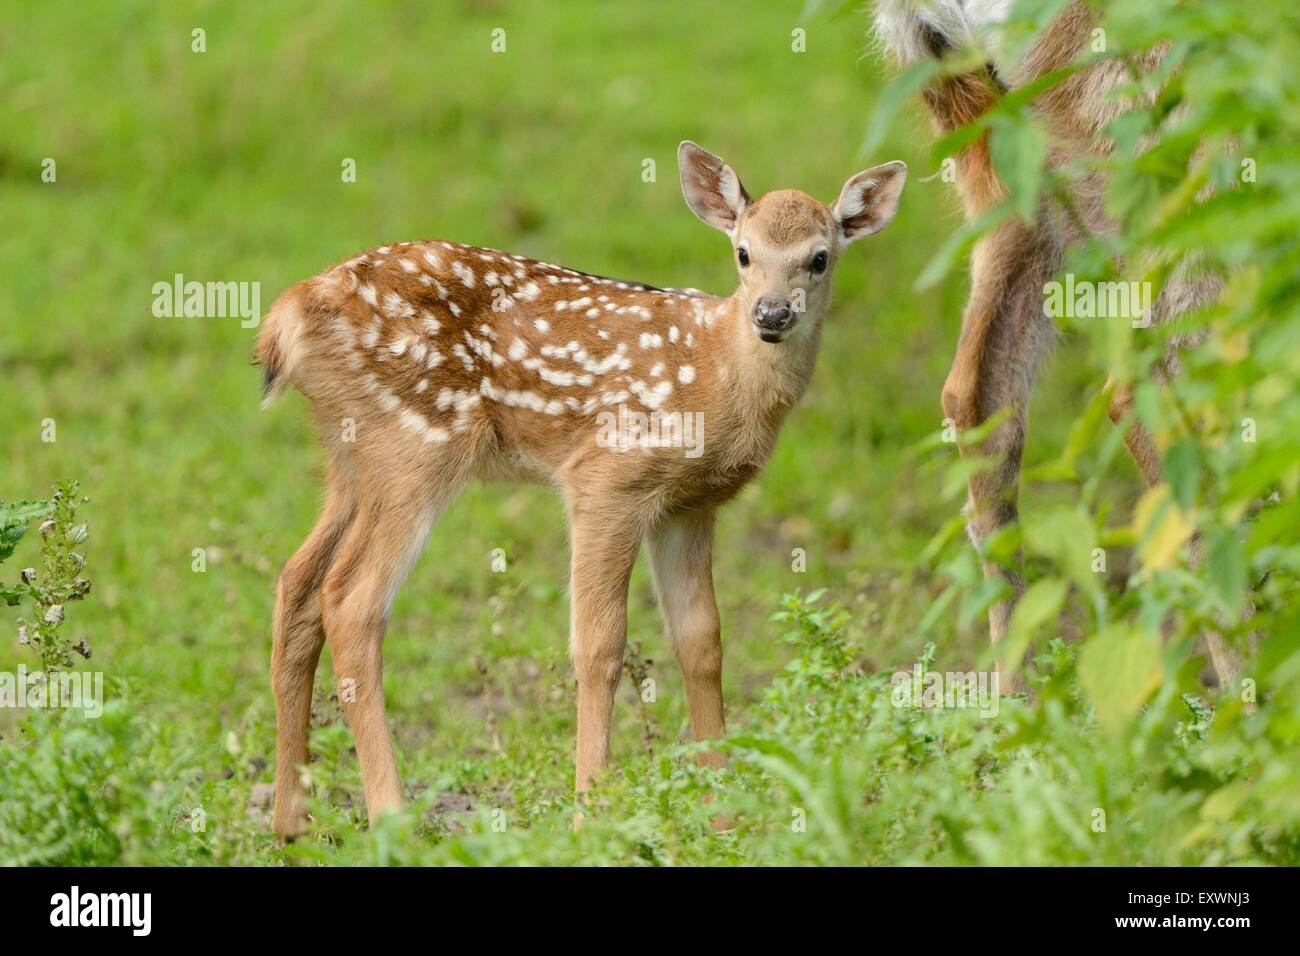 Sika deer fawn on a meadow Stock Photo: 85388299 - Alamy